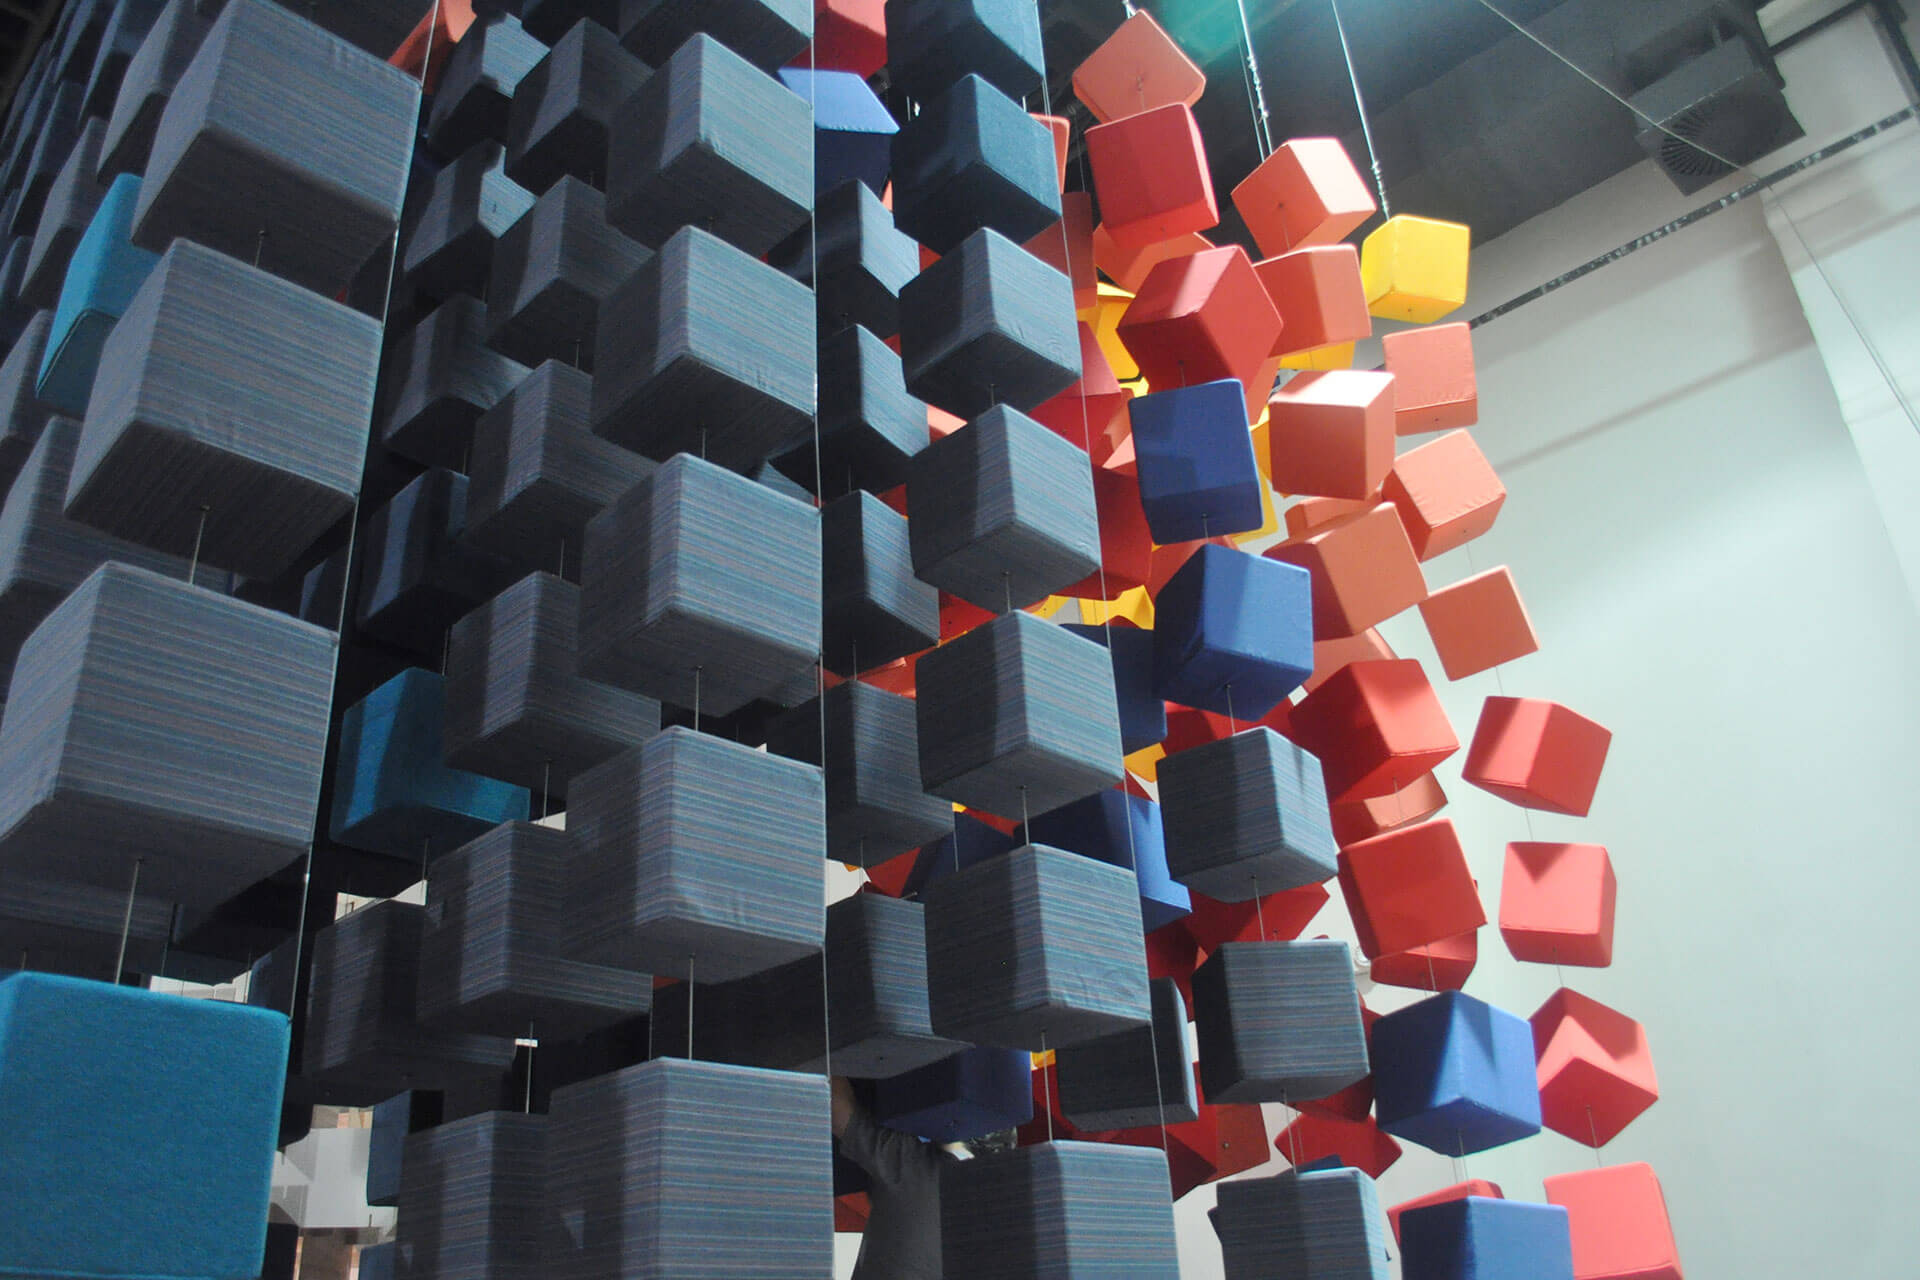 Cubes in blue and red Sunbrella fabrics are suspended in the Sunbrella Spectrum installation at Singapore inDesign.